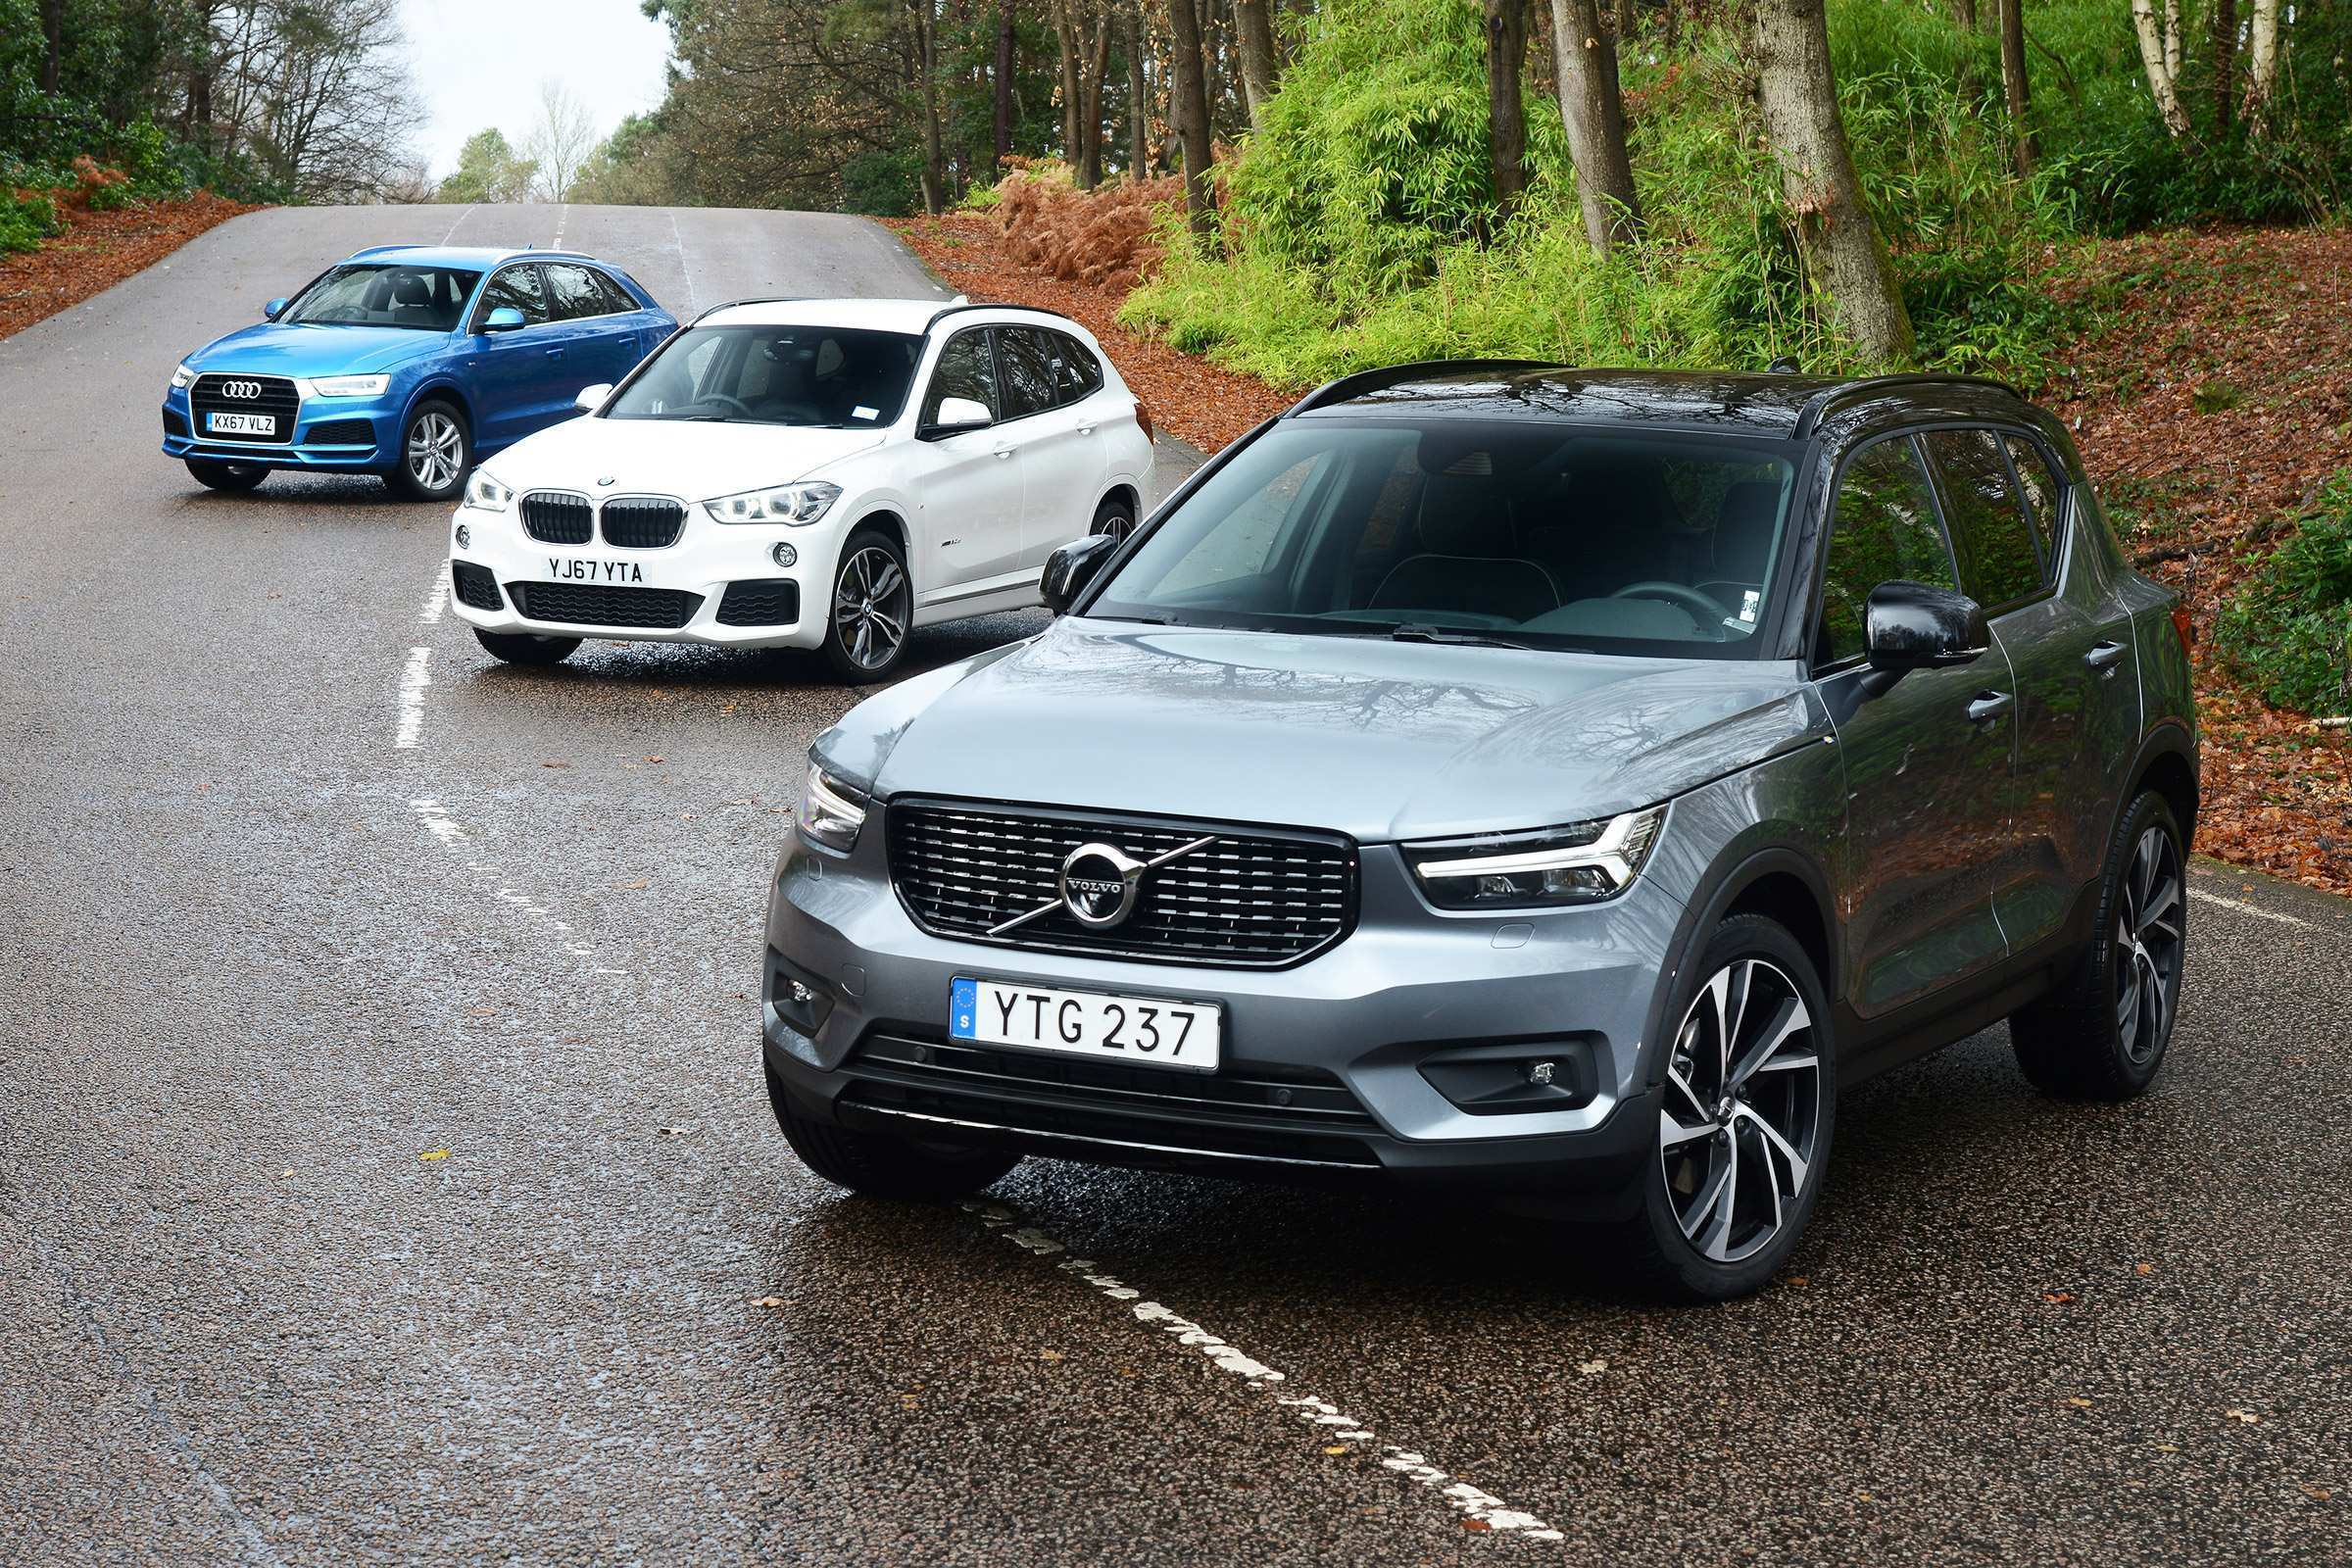 58 Concept of 2020 Volvo Xc40 Length Review for 2020 Volvo Xc40 Length